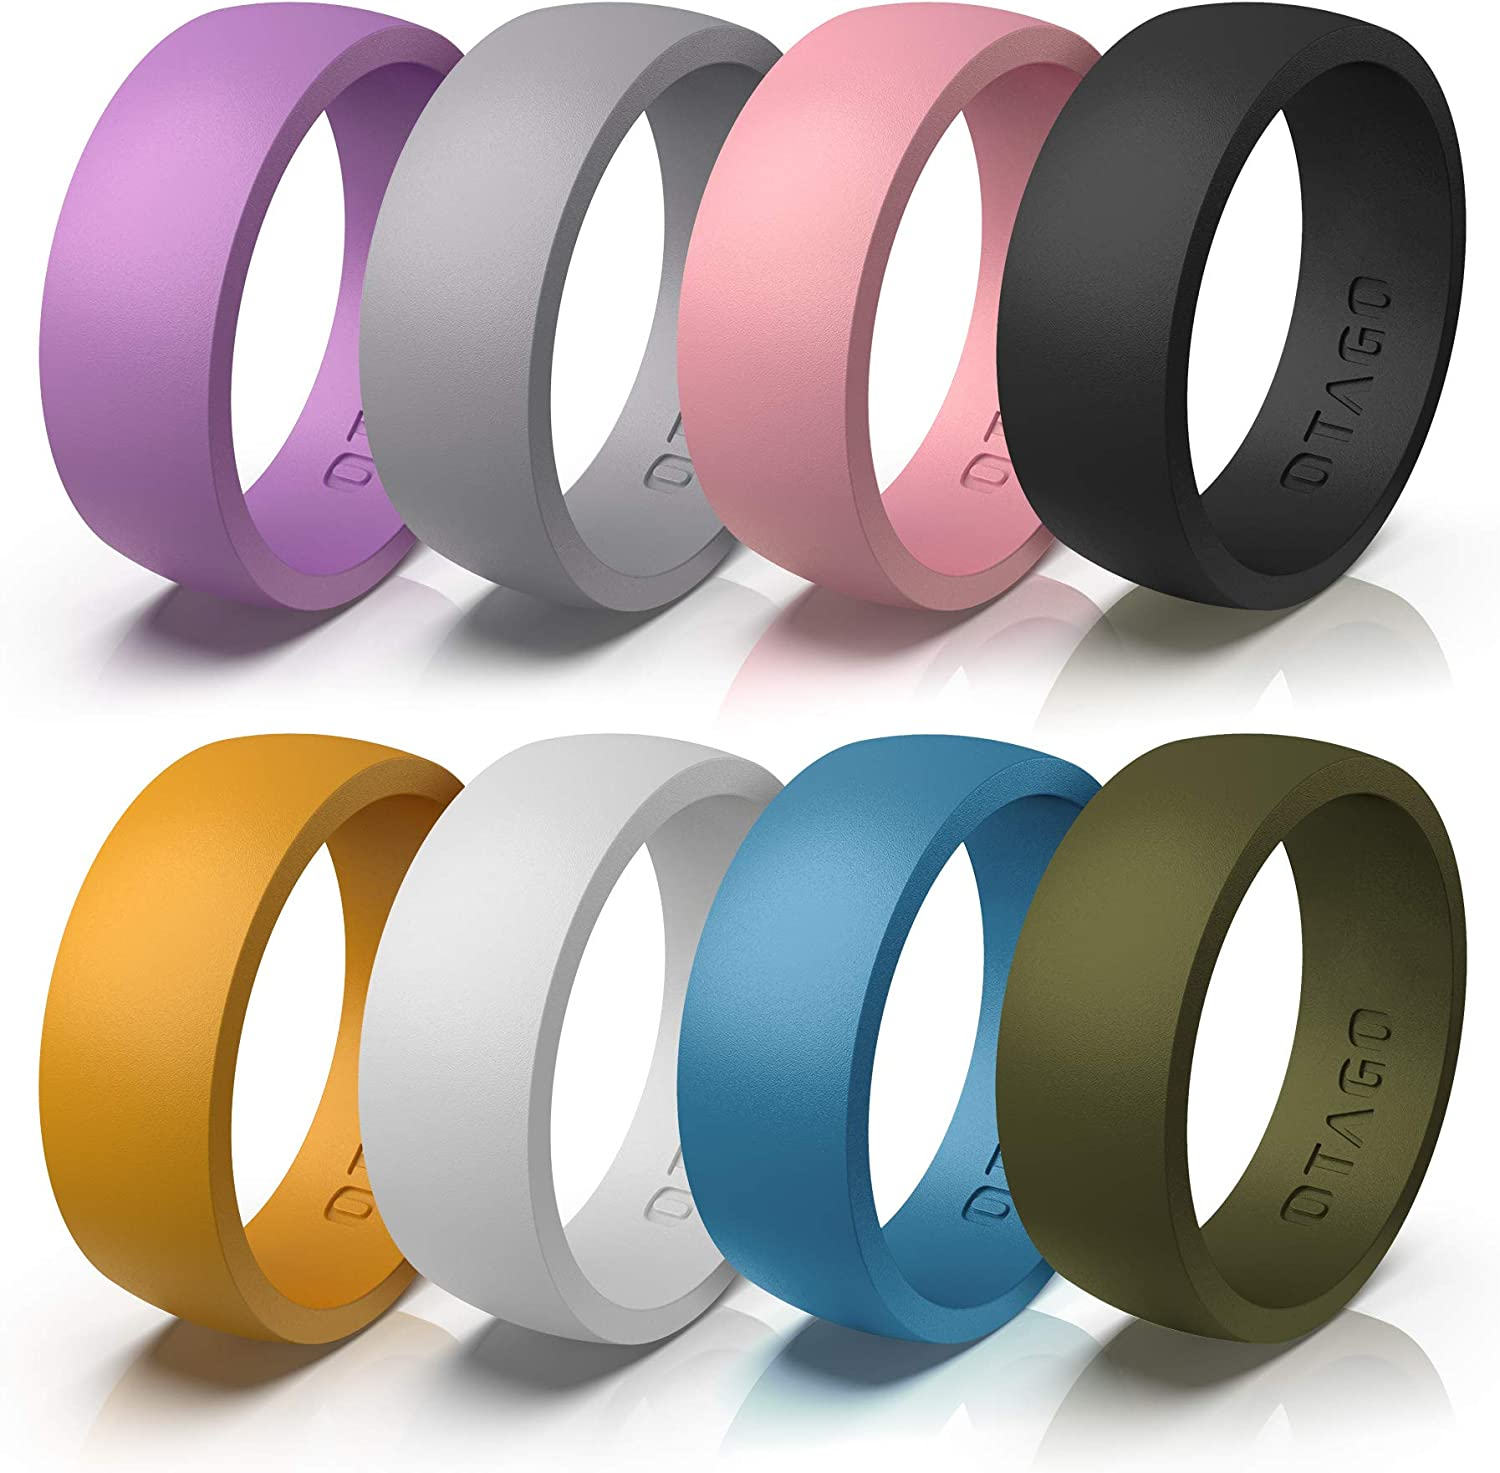 OTAGO Silicone Rings Wedding Bands for Women Men,8 Packs Colorful Rings Soft and Safe for Sports,Housework,Comfortable Fit,Fashion Style-Metal and Vivid Matte Colours Size5-12